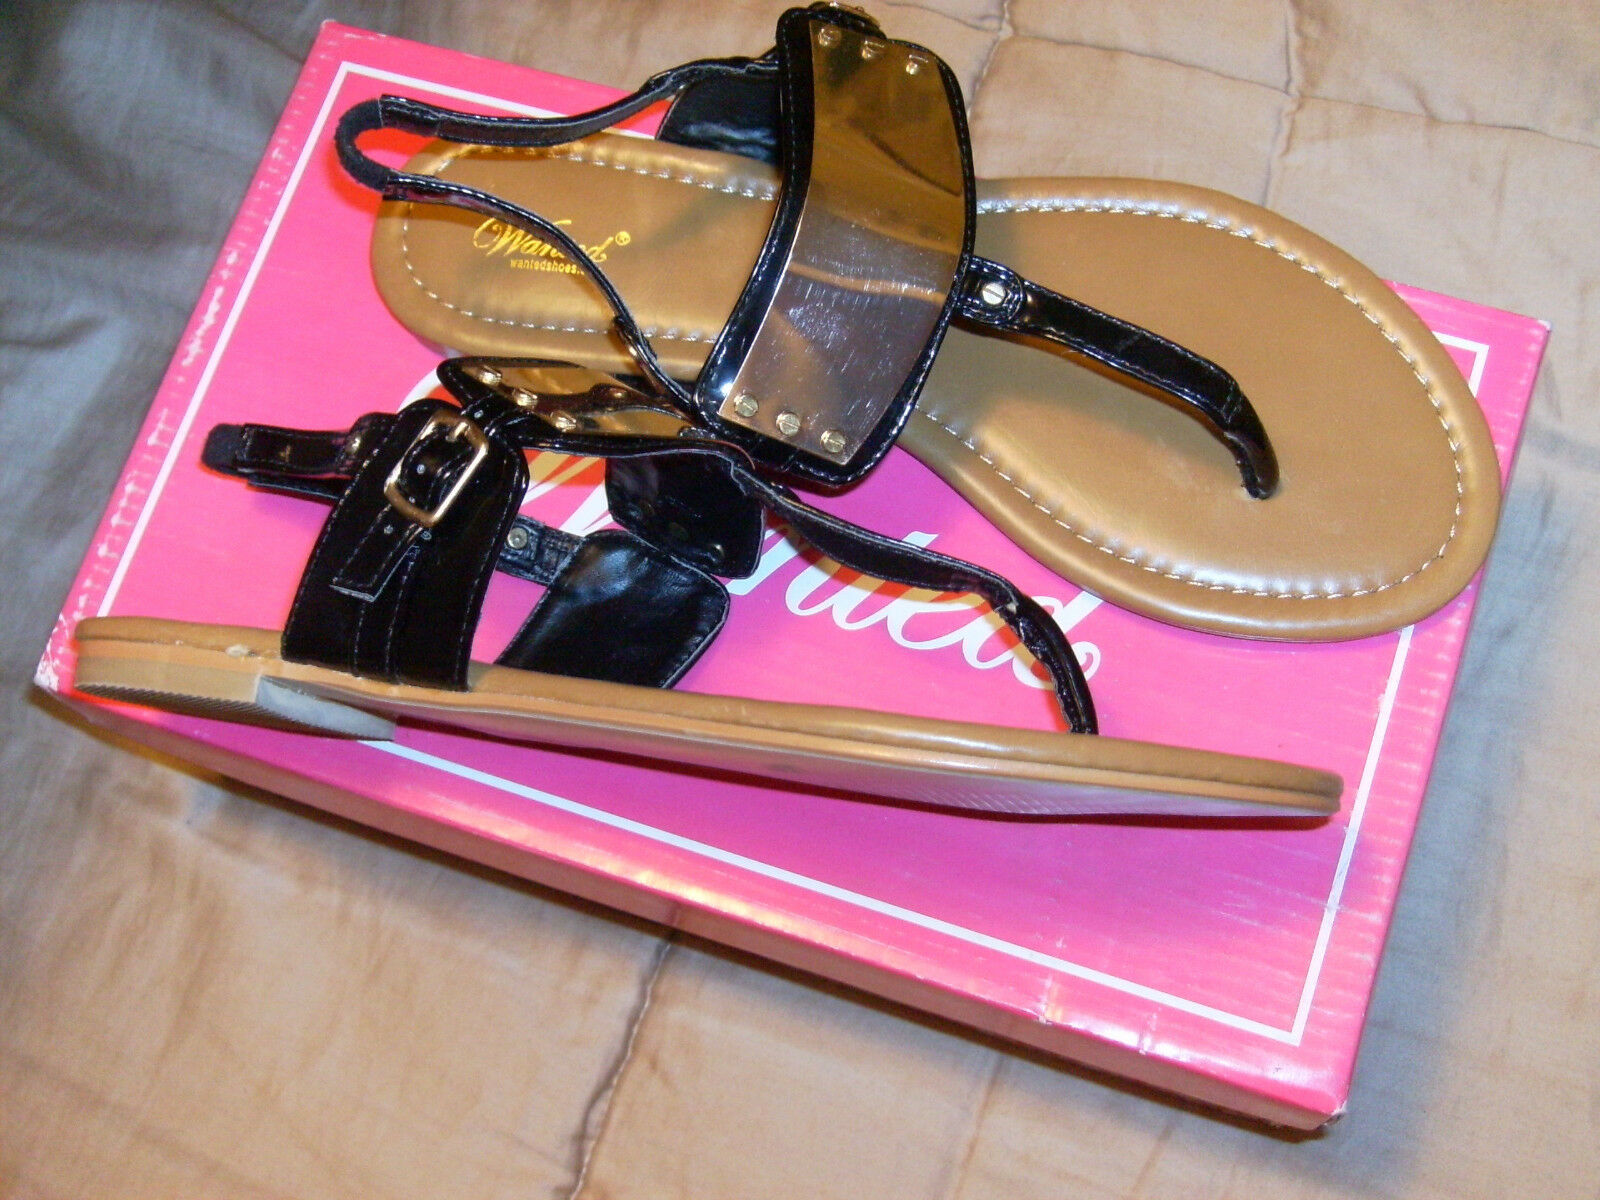 BY Wanted 717191 Shoes; Women's Cocoa Thong Sandal,Black Patent,8 M 717191 Wanted NWB SZ 8M ea2570